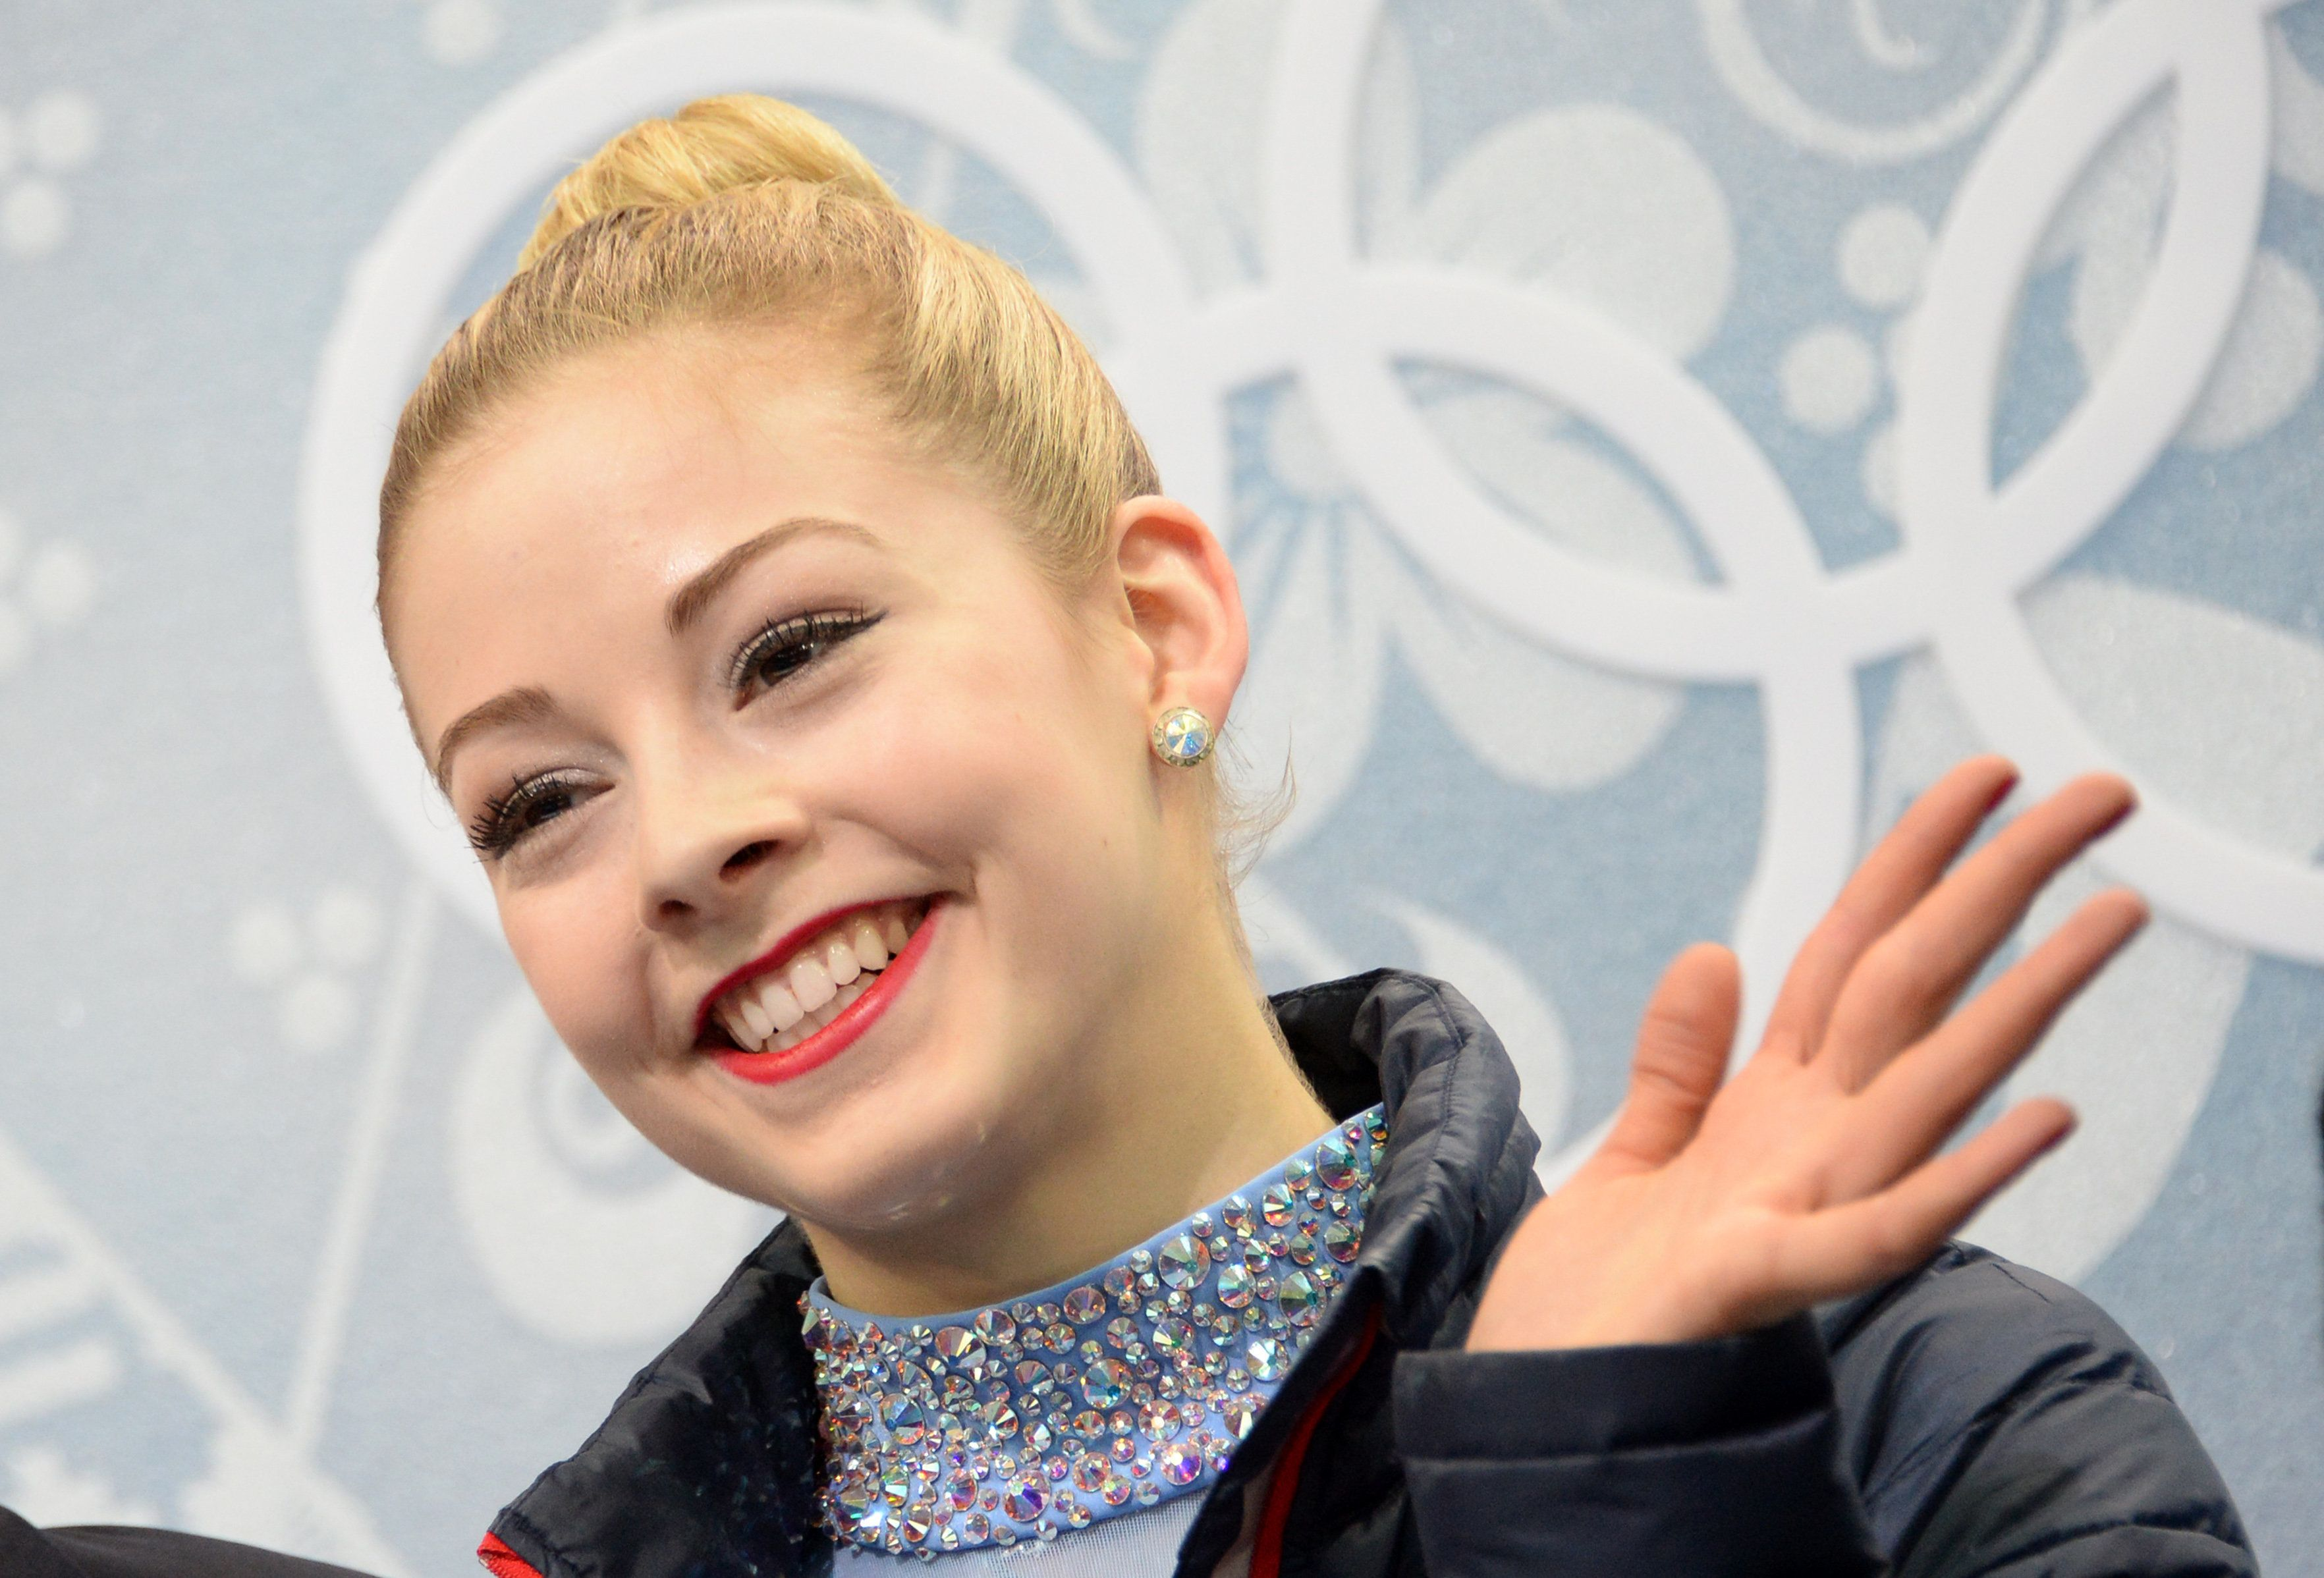 US Gracie Gold smiles in the kiss and cry zone during the Women's Figure Skating Free Program at the Iceberg Skating Palace during the Sochi Winter Olympics on February 20, 2014.  AFP PHOTO / DAMIEN MEYER        (Photo credit should read DAMIEN MEYER/AFP/Getty Images)